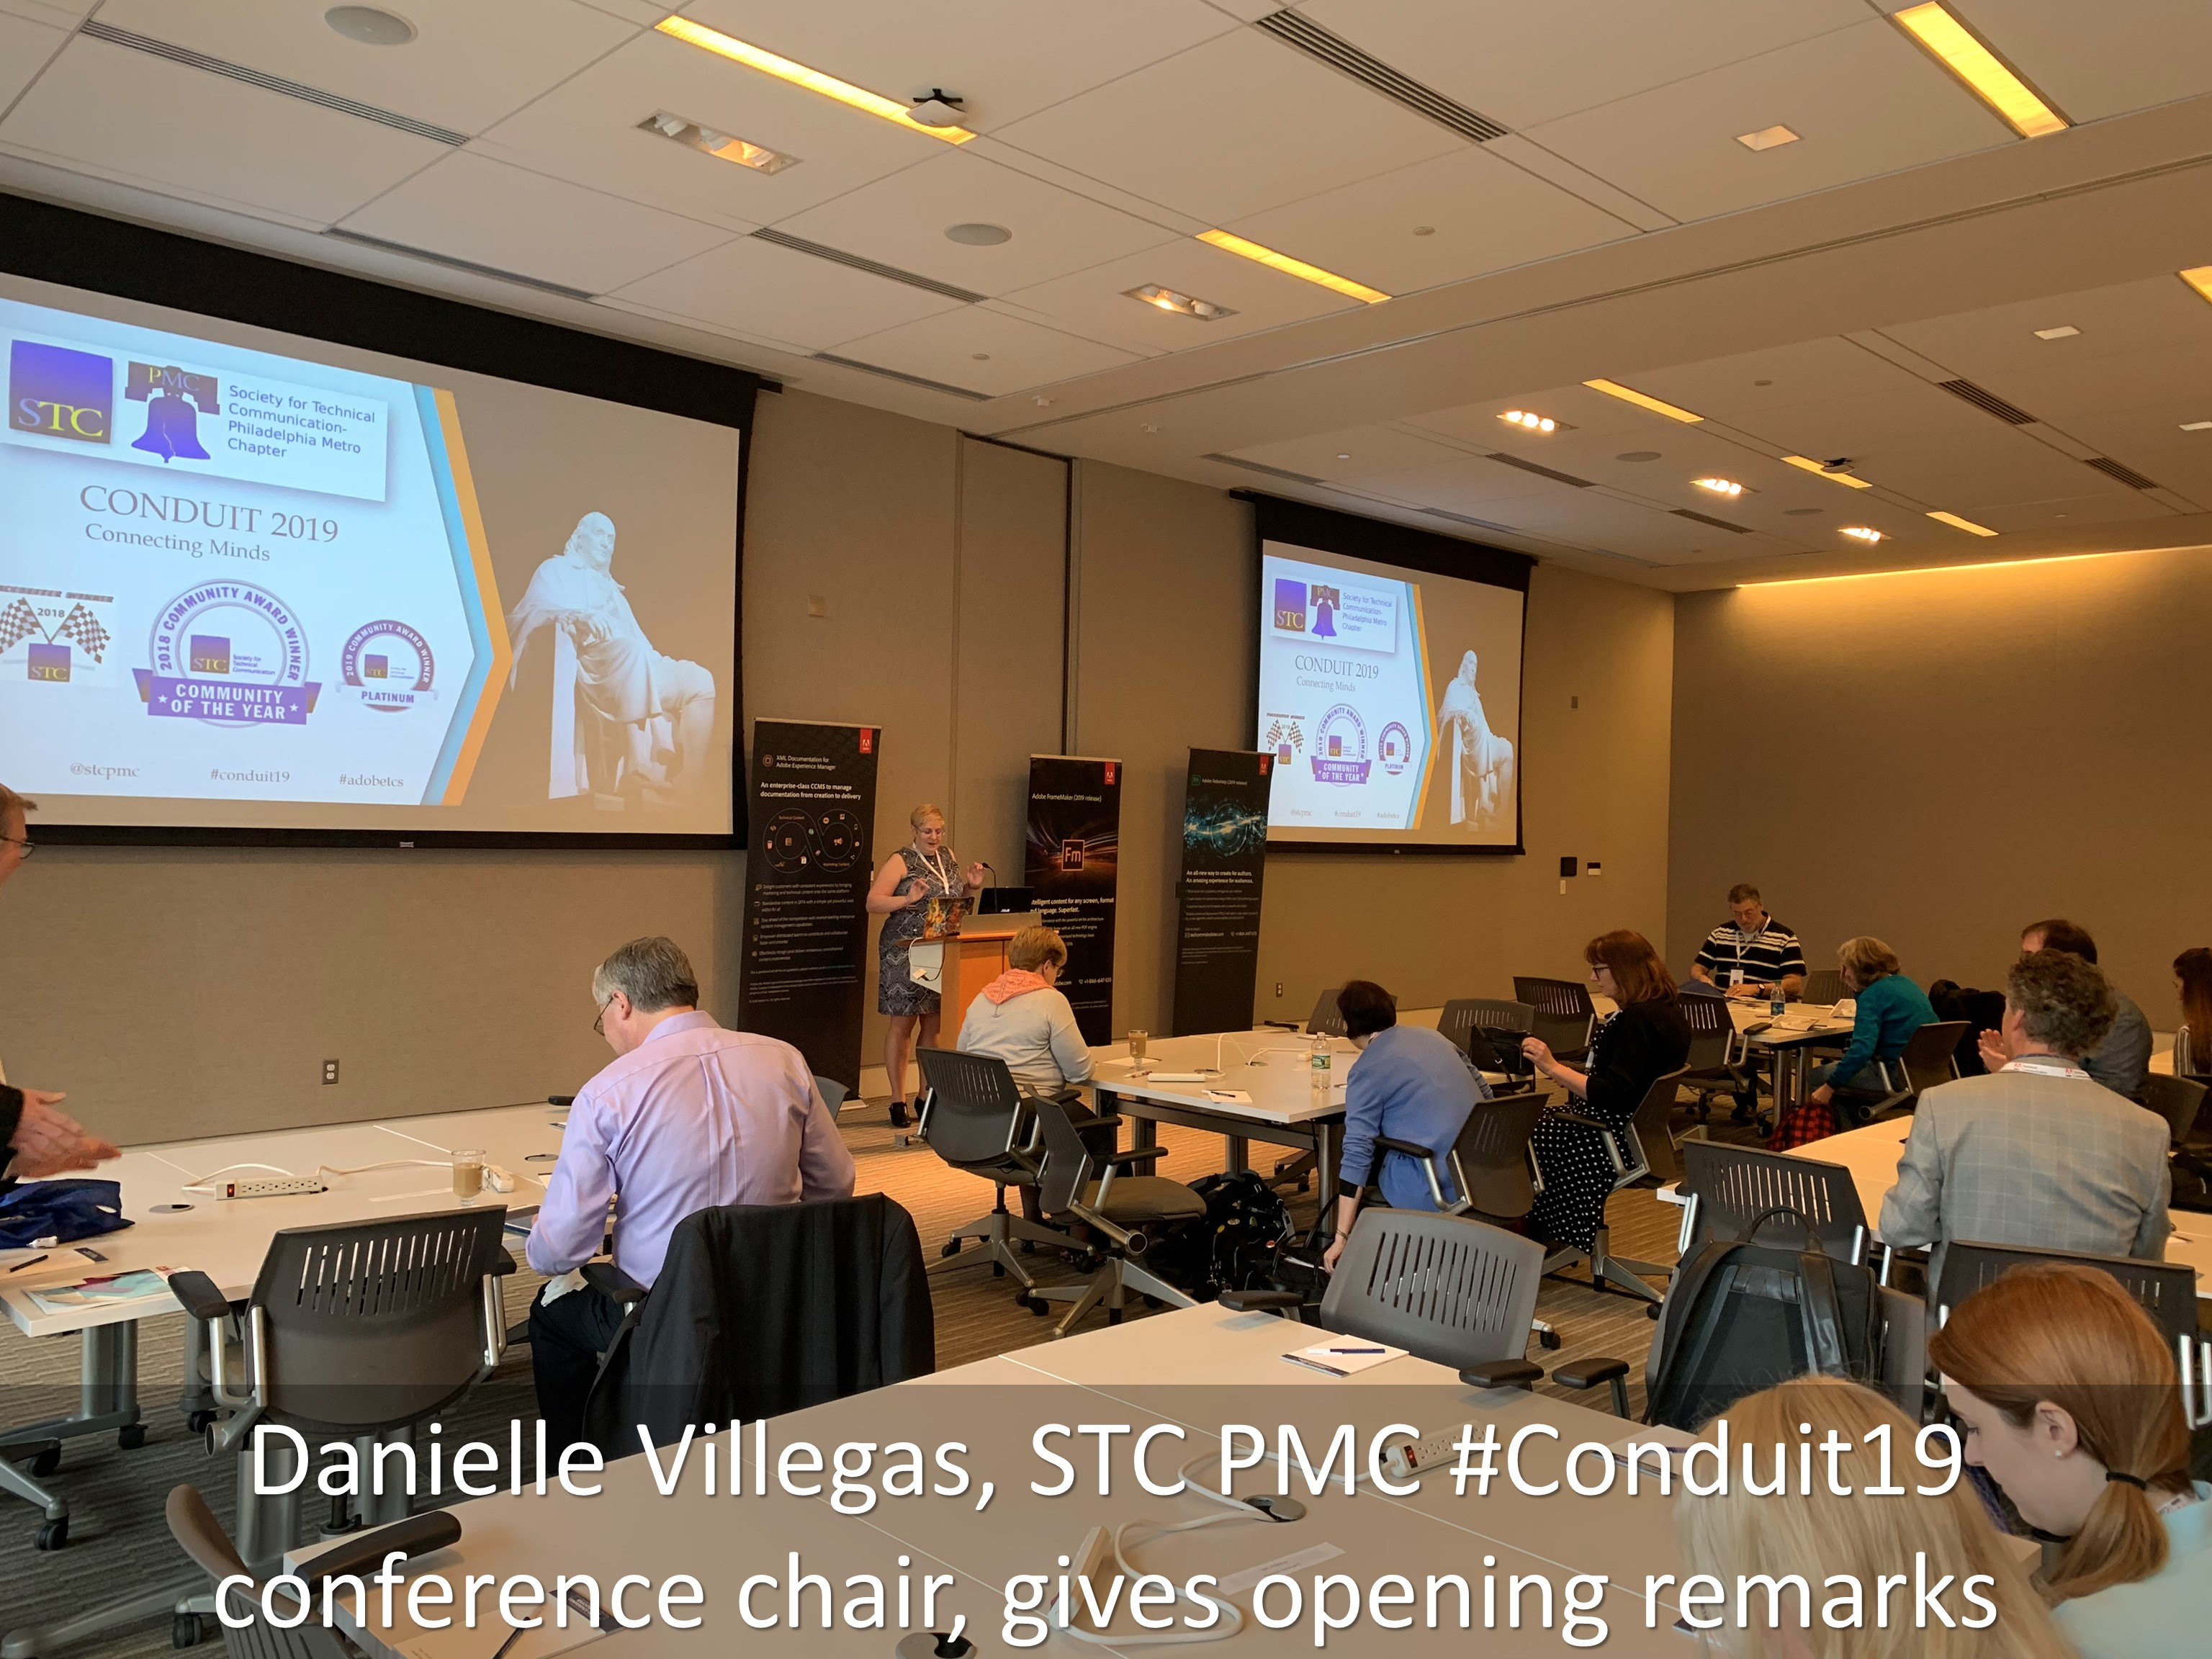 01 Danielle Villegas STC PMC Conduit19 conference chair gives opening remarks